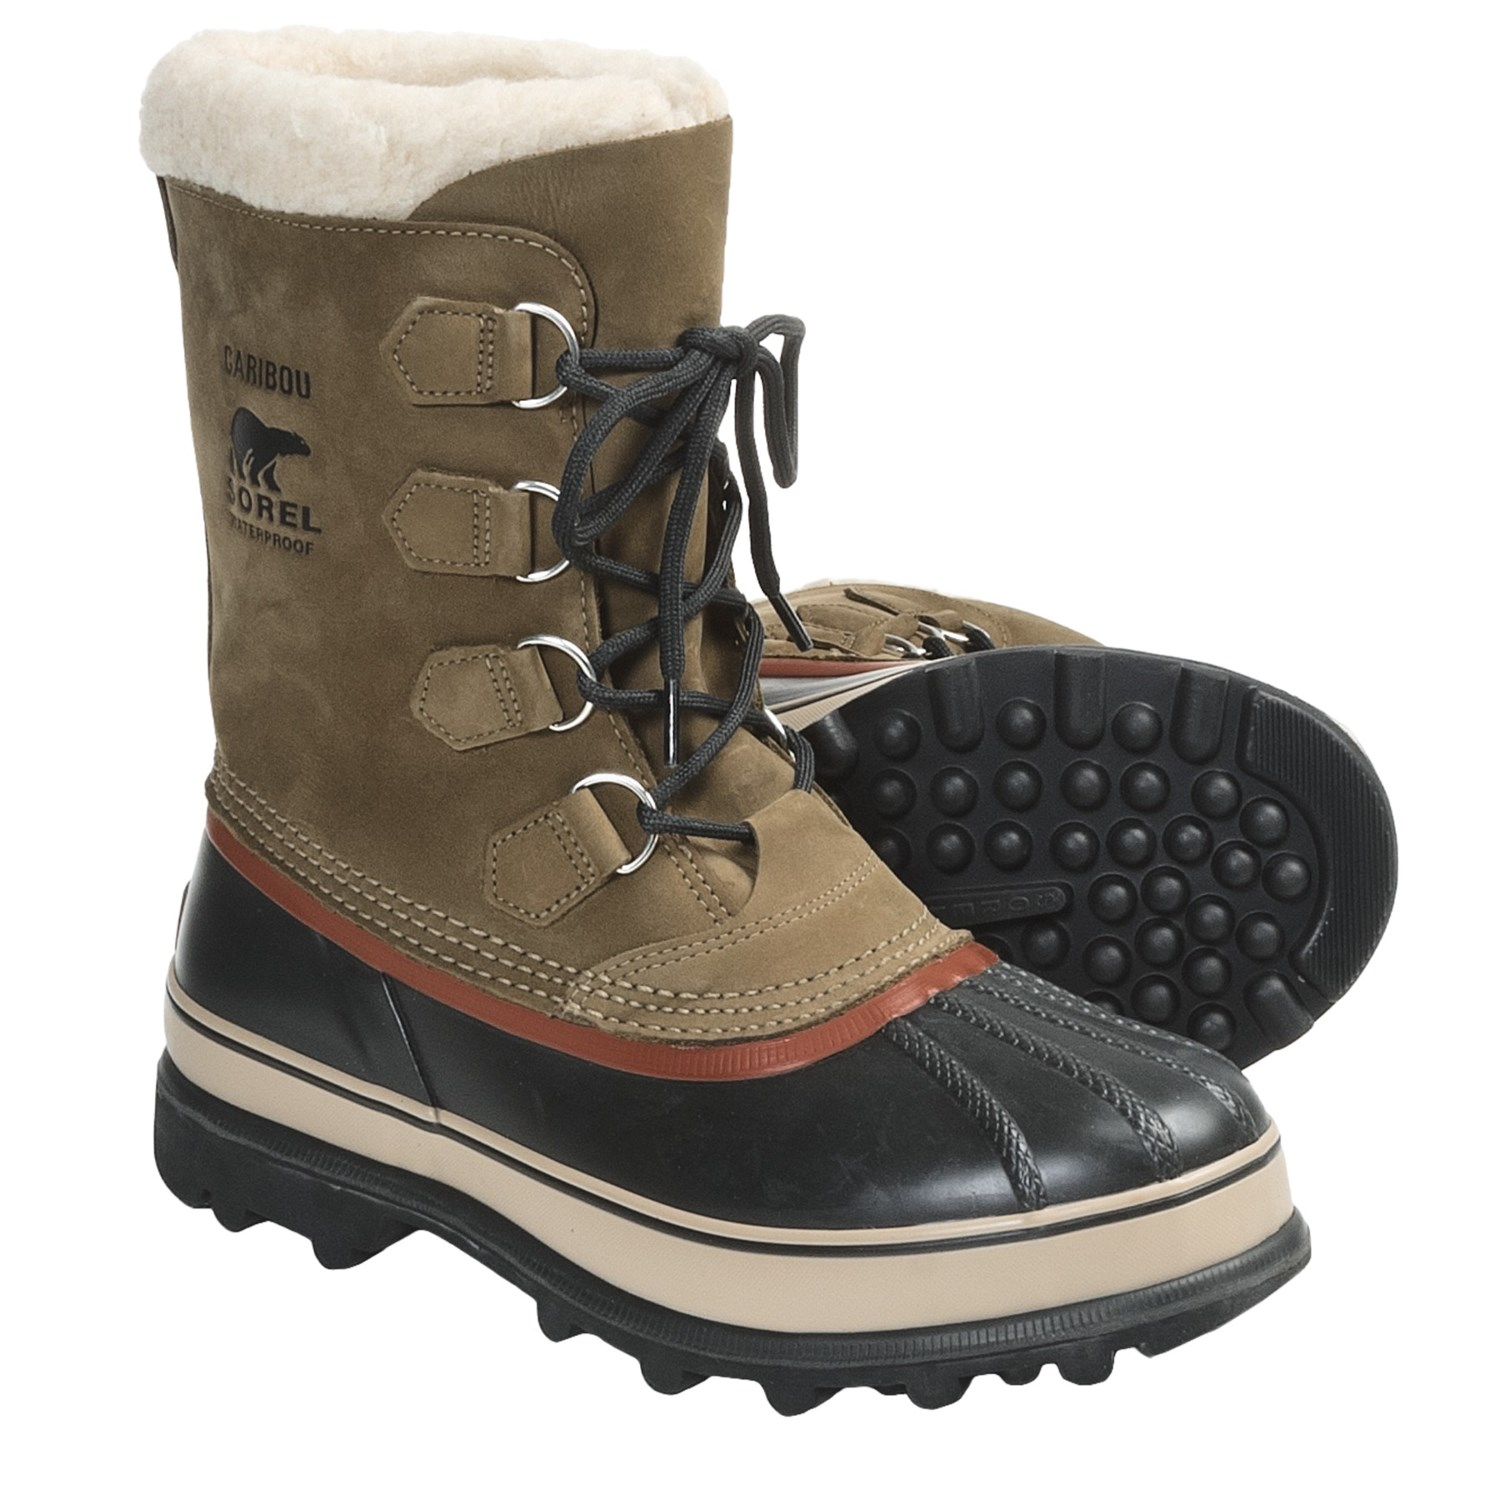 Sorel Caribou II Winter Boots - Waterproof (For Men)